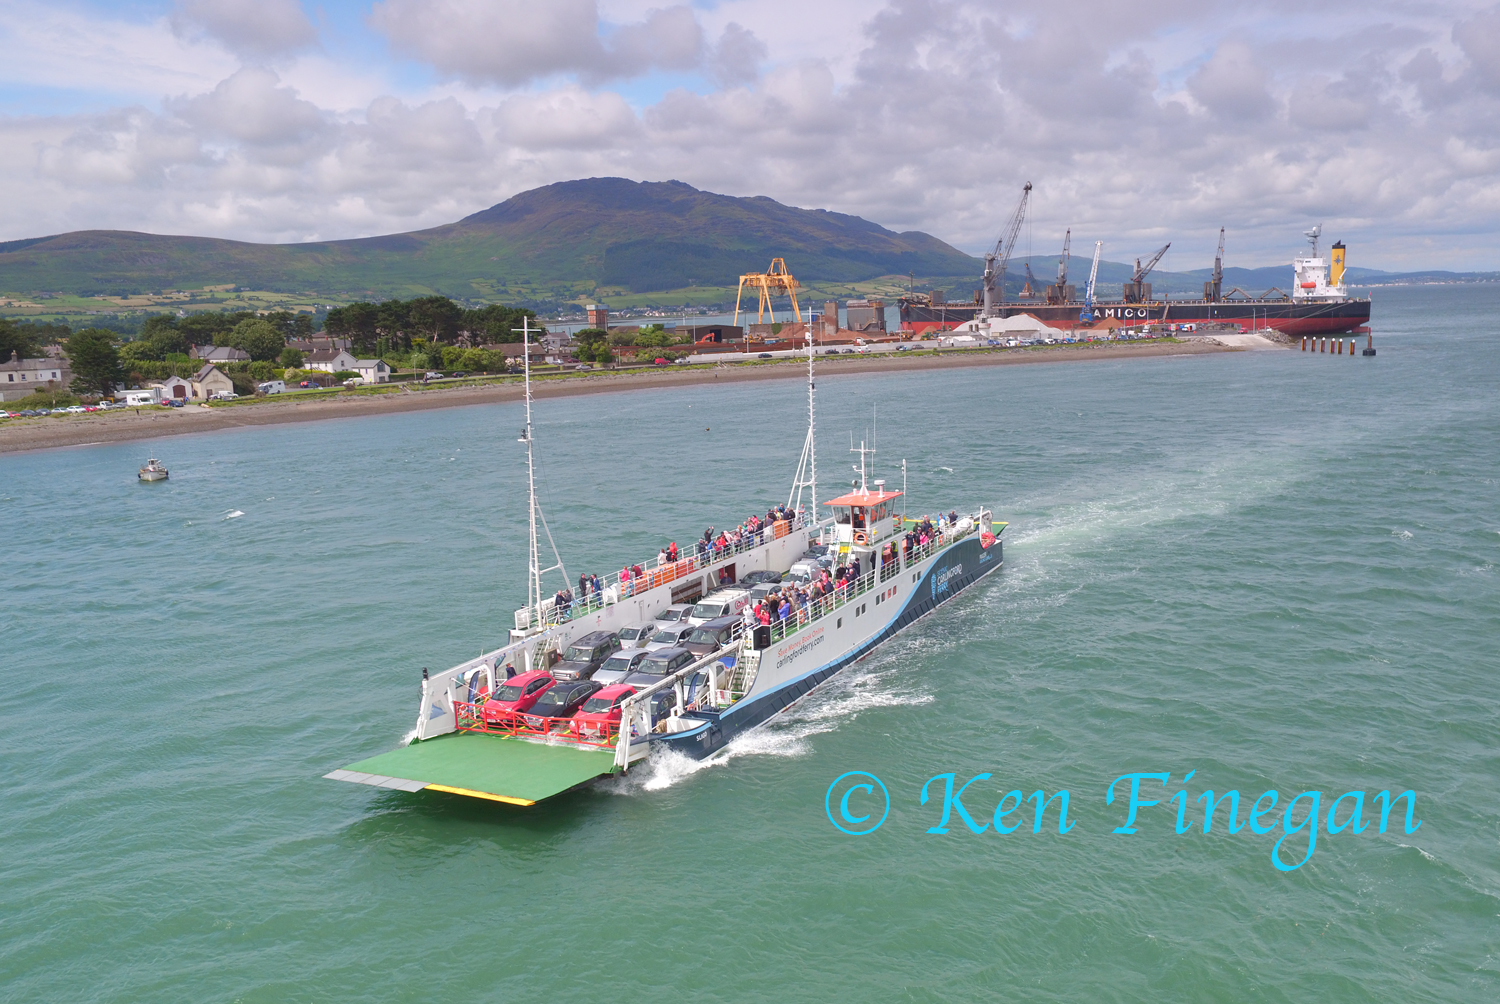 Carlingford ferry01